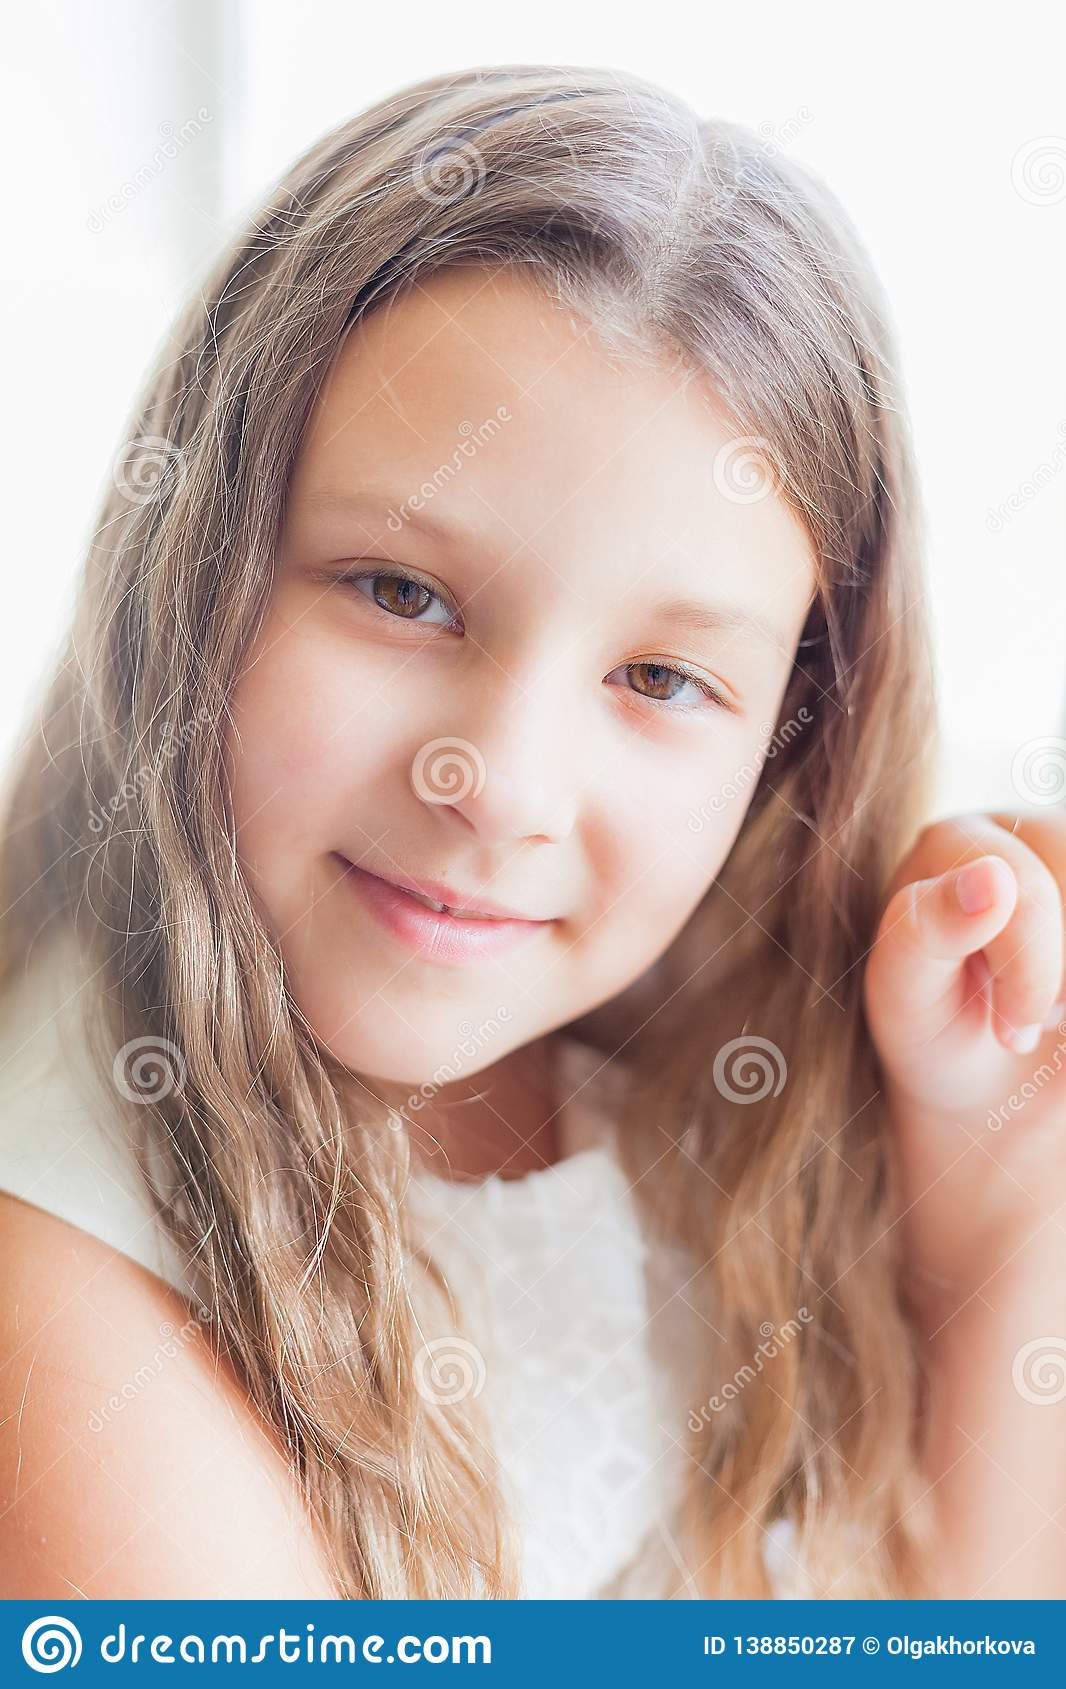 9b2a8530a Portrait Of Pretty Little Girl In White Dress Stock Image - Image of ...